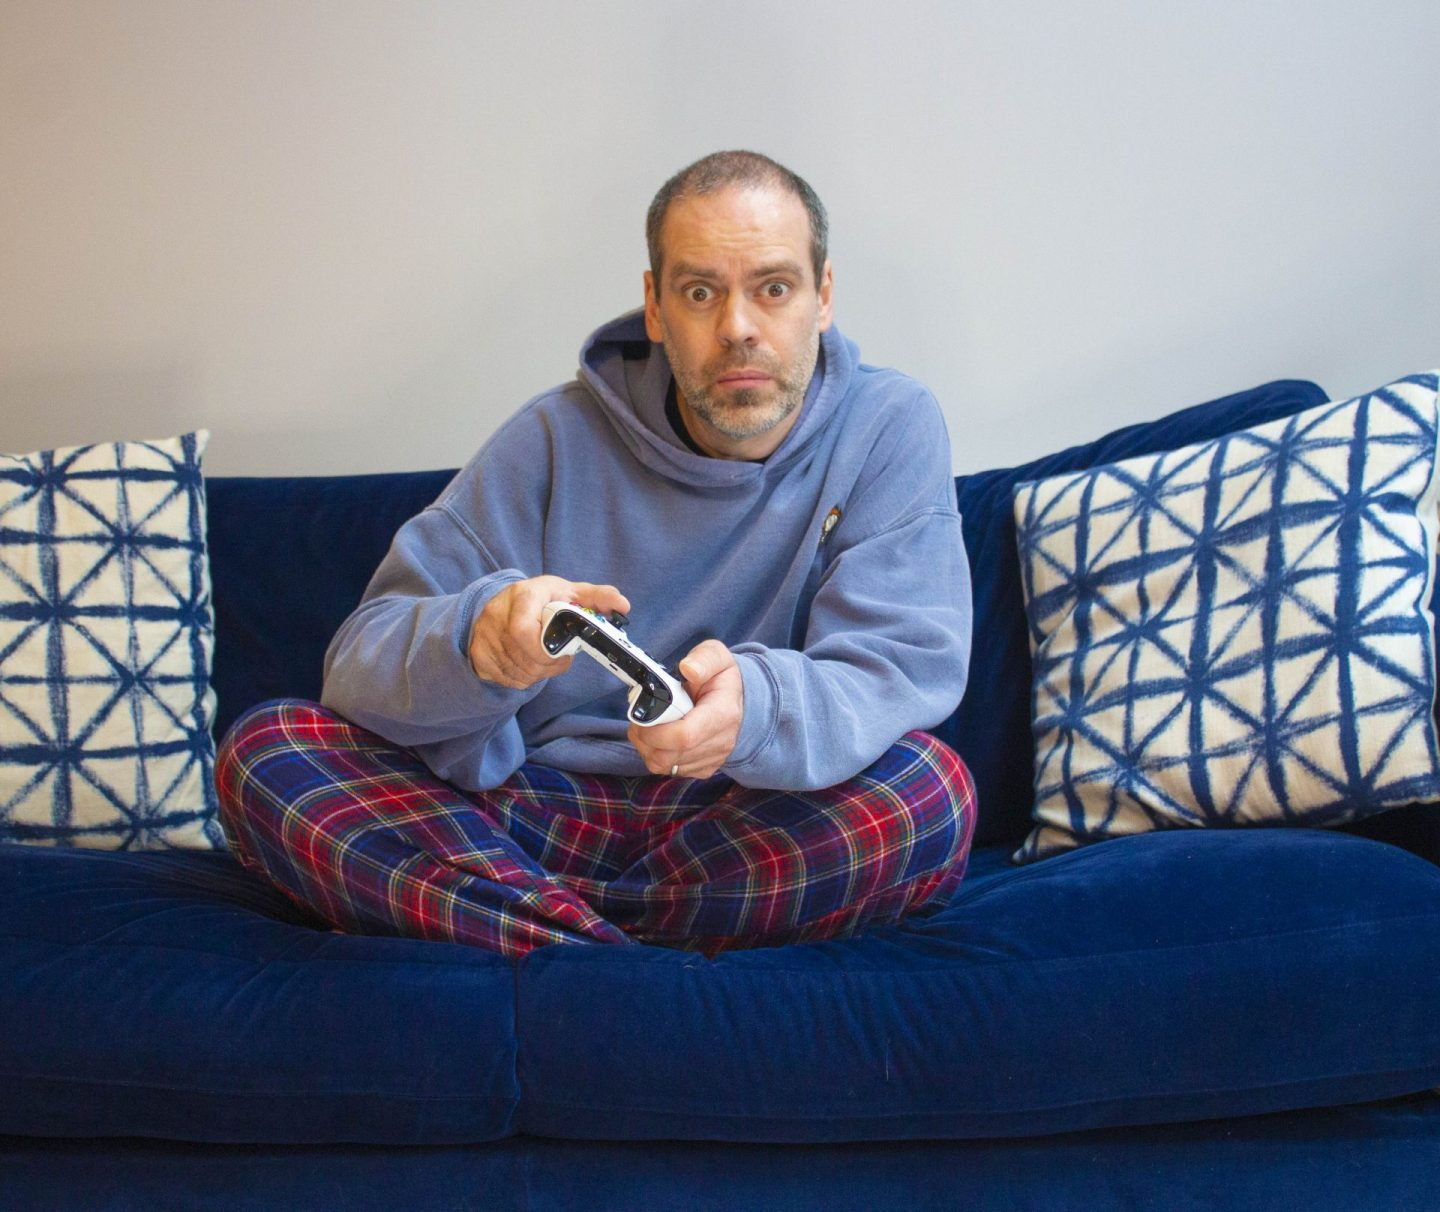 Man with no motivation sat on a sofa